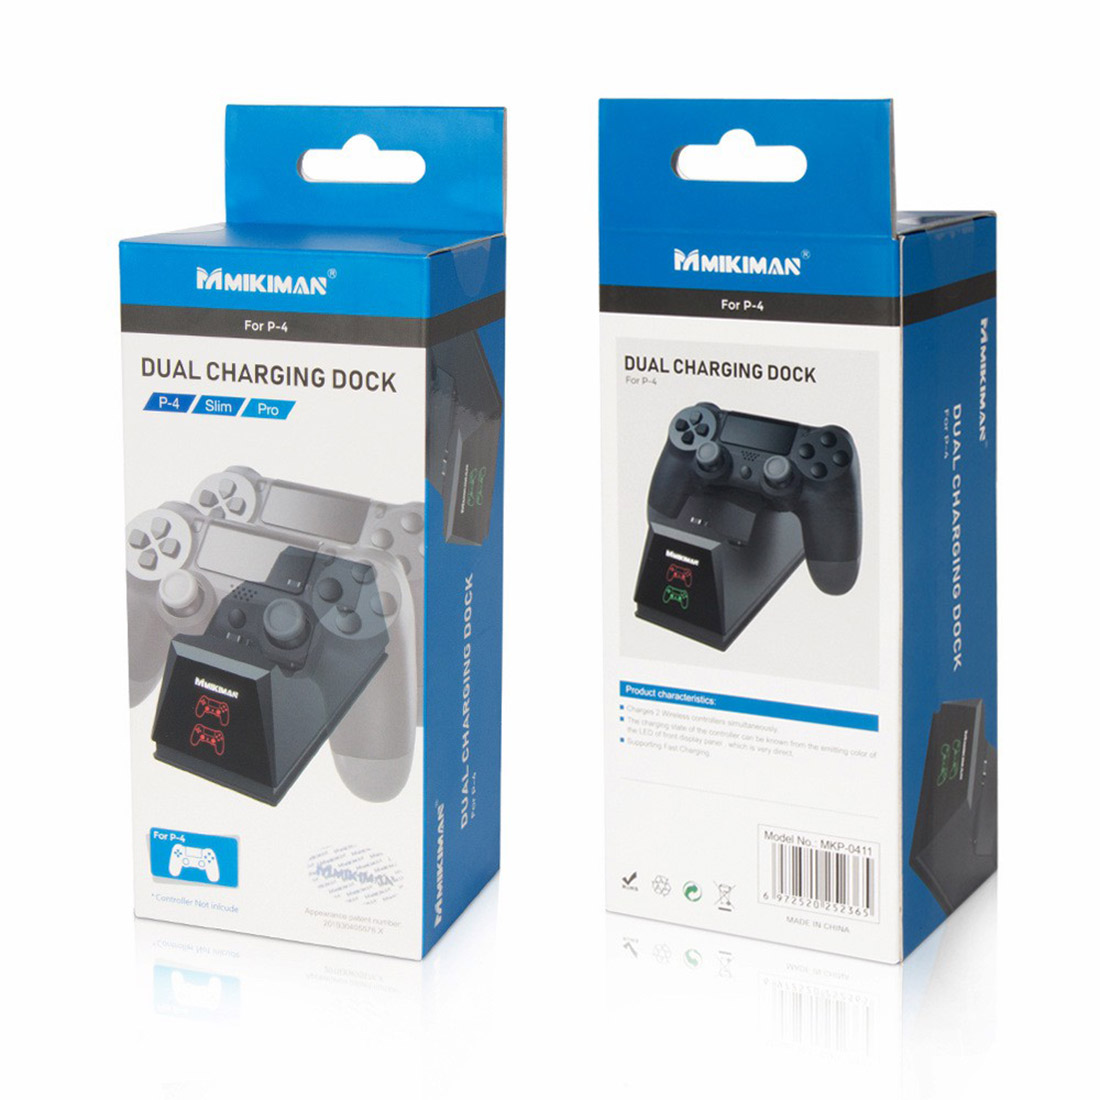 Dual Charging Dock for PS4 /Slim /Pro